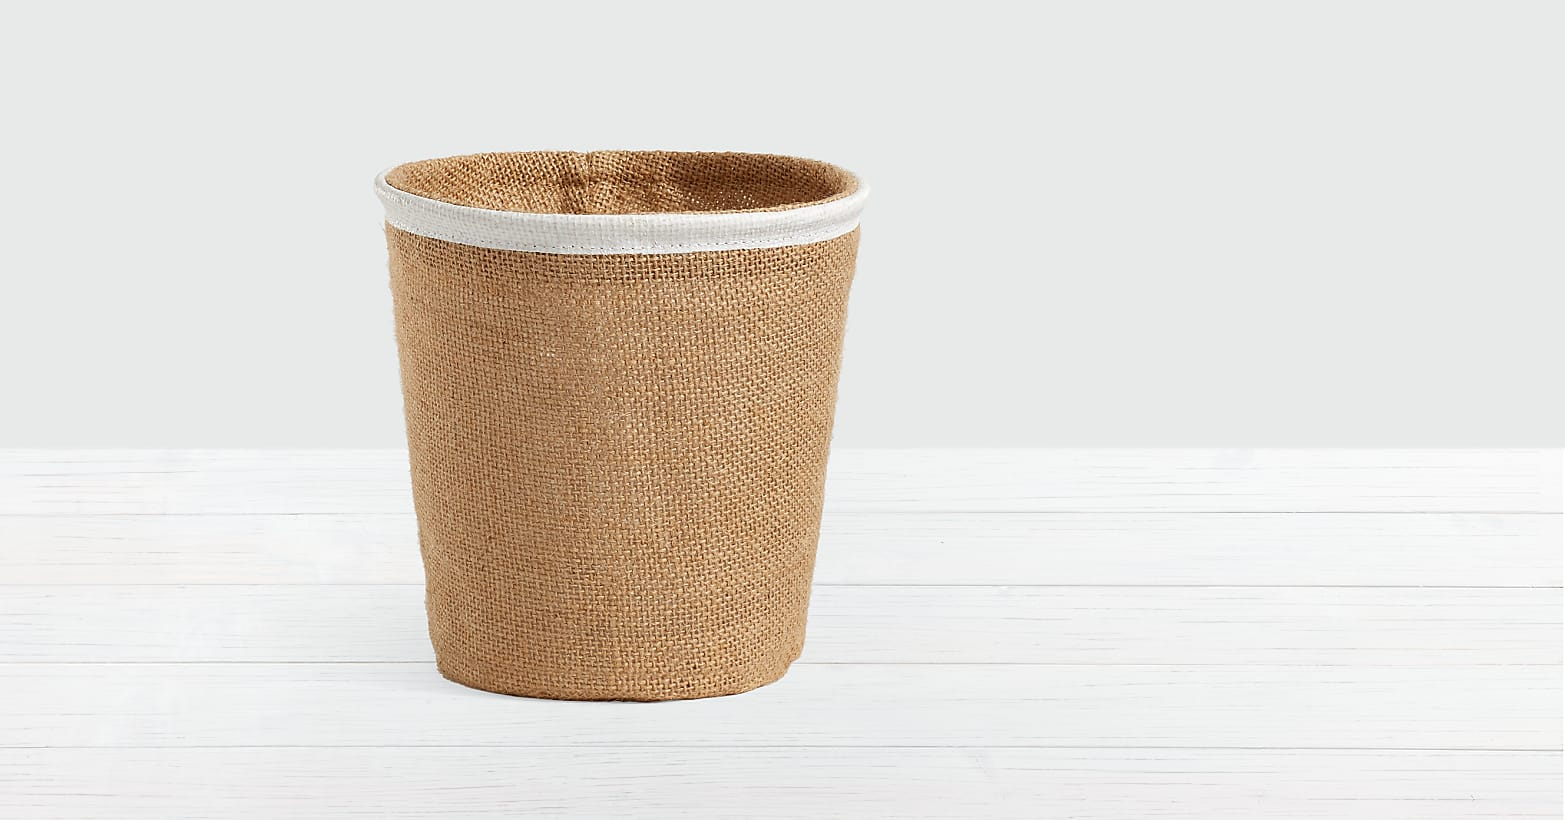 Lush Tropical Peace Lily in Burlap Container - Image 2 Of 2